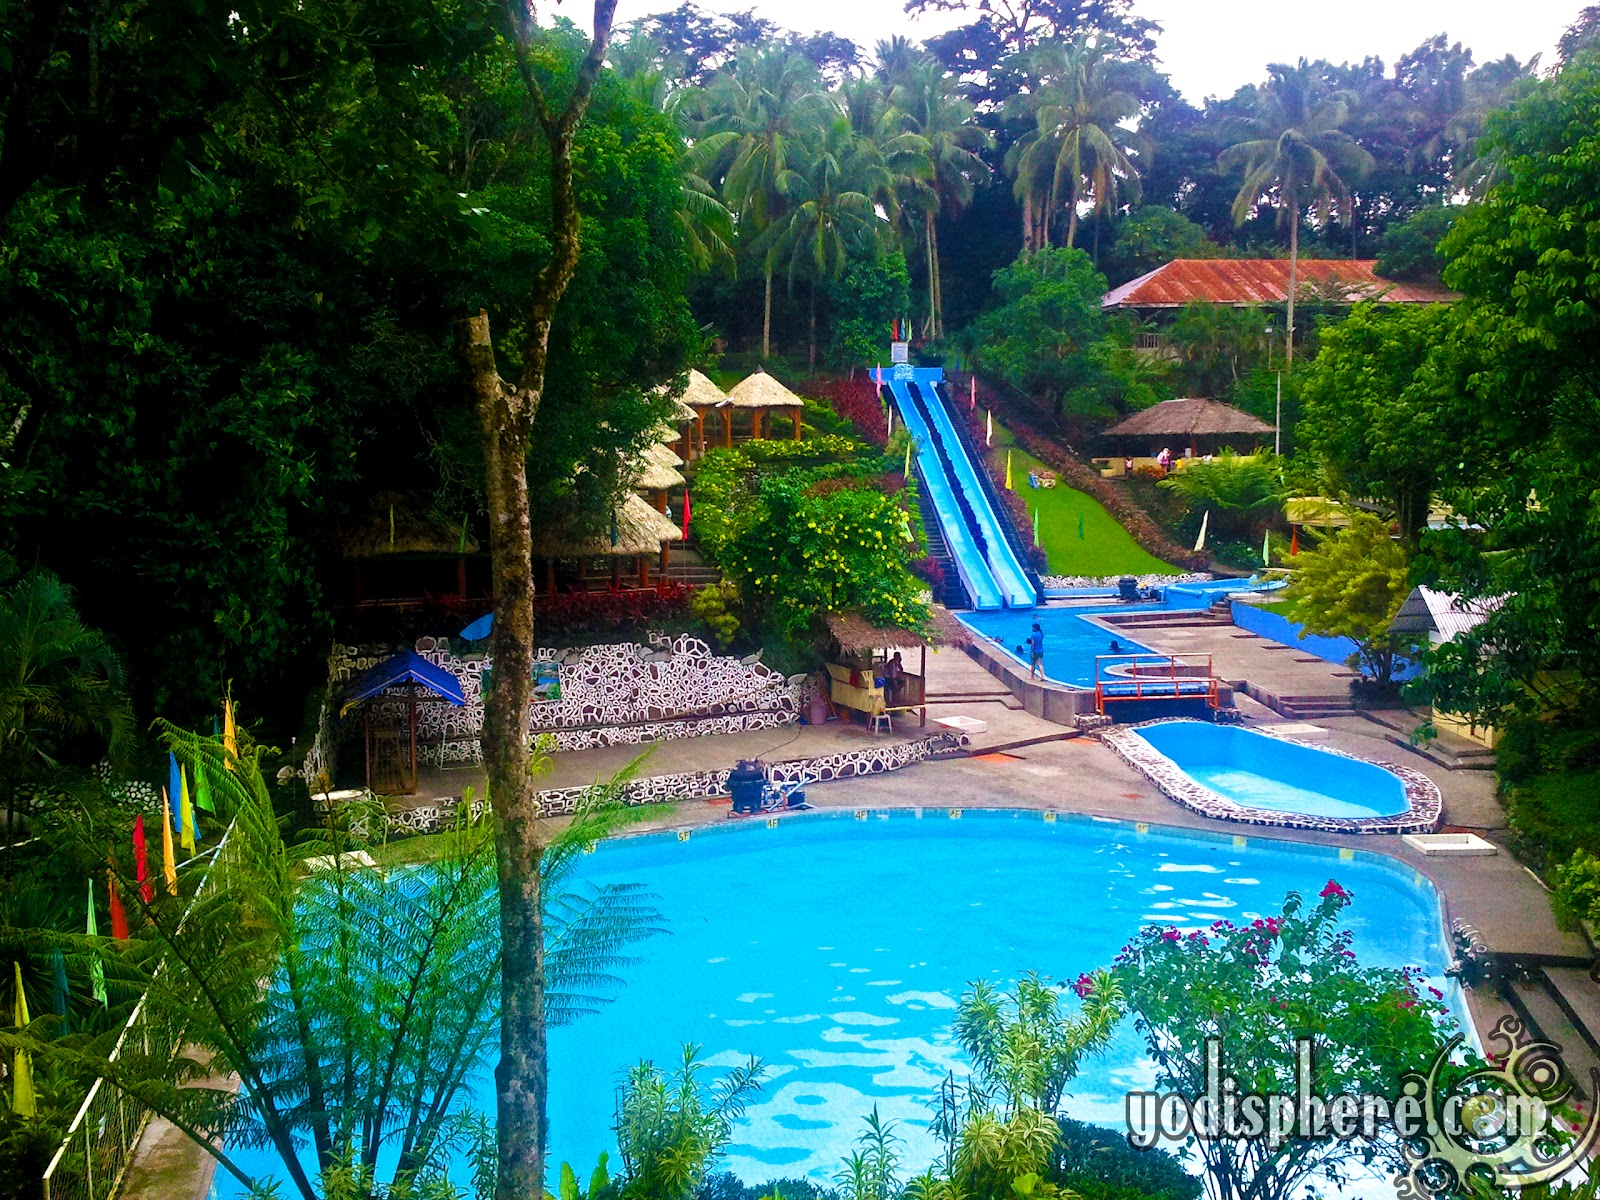 Full photo of the mountain resort with main swimming pool slide and garden